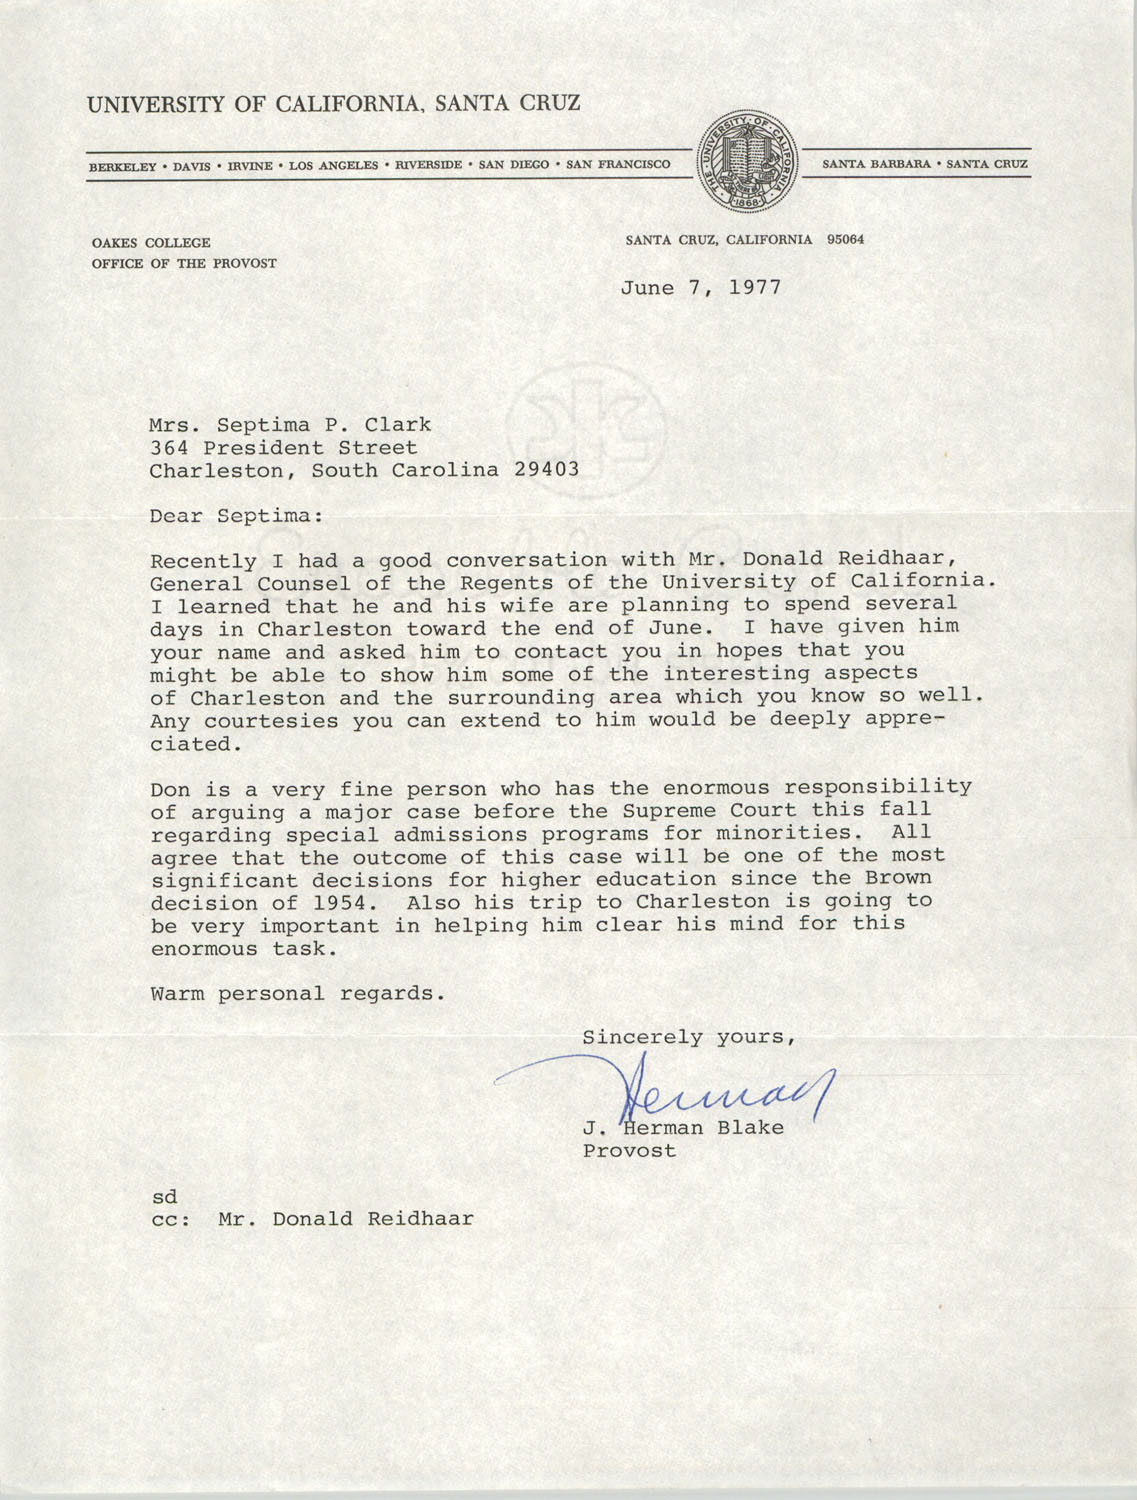 Letter from J. Herman Blake to Septima P. Clark, June 7, 1977